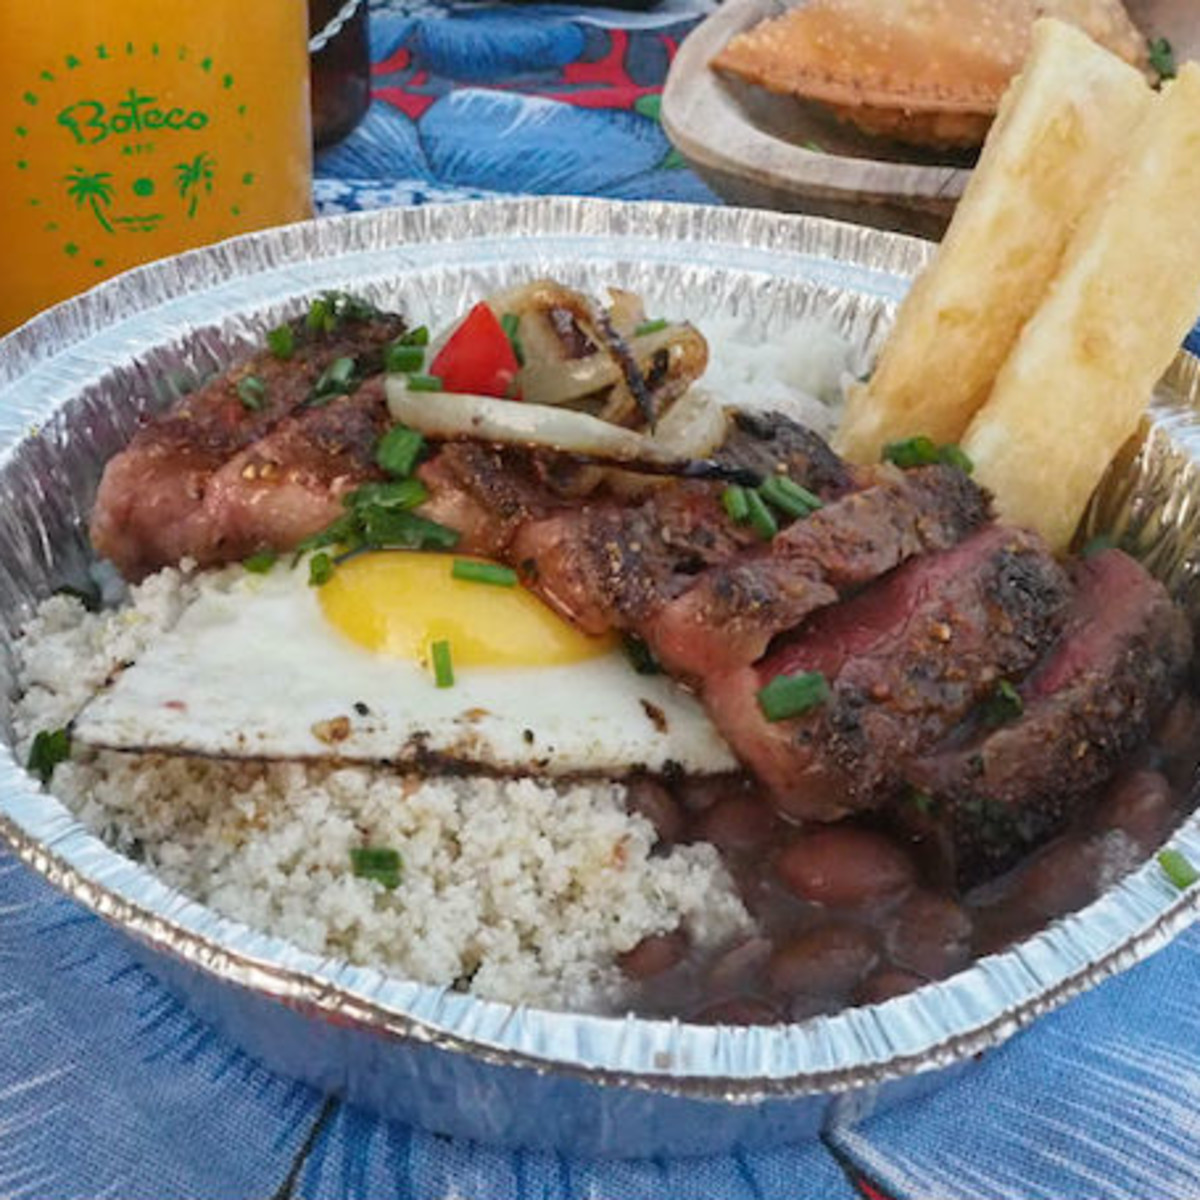 Boteco food truck Picanha Grelhada sirloin steak